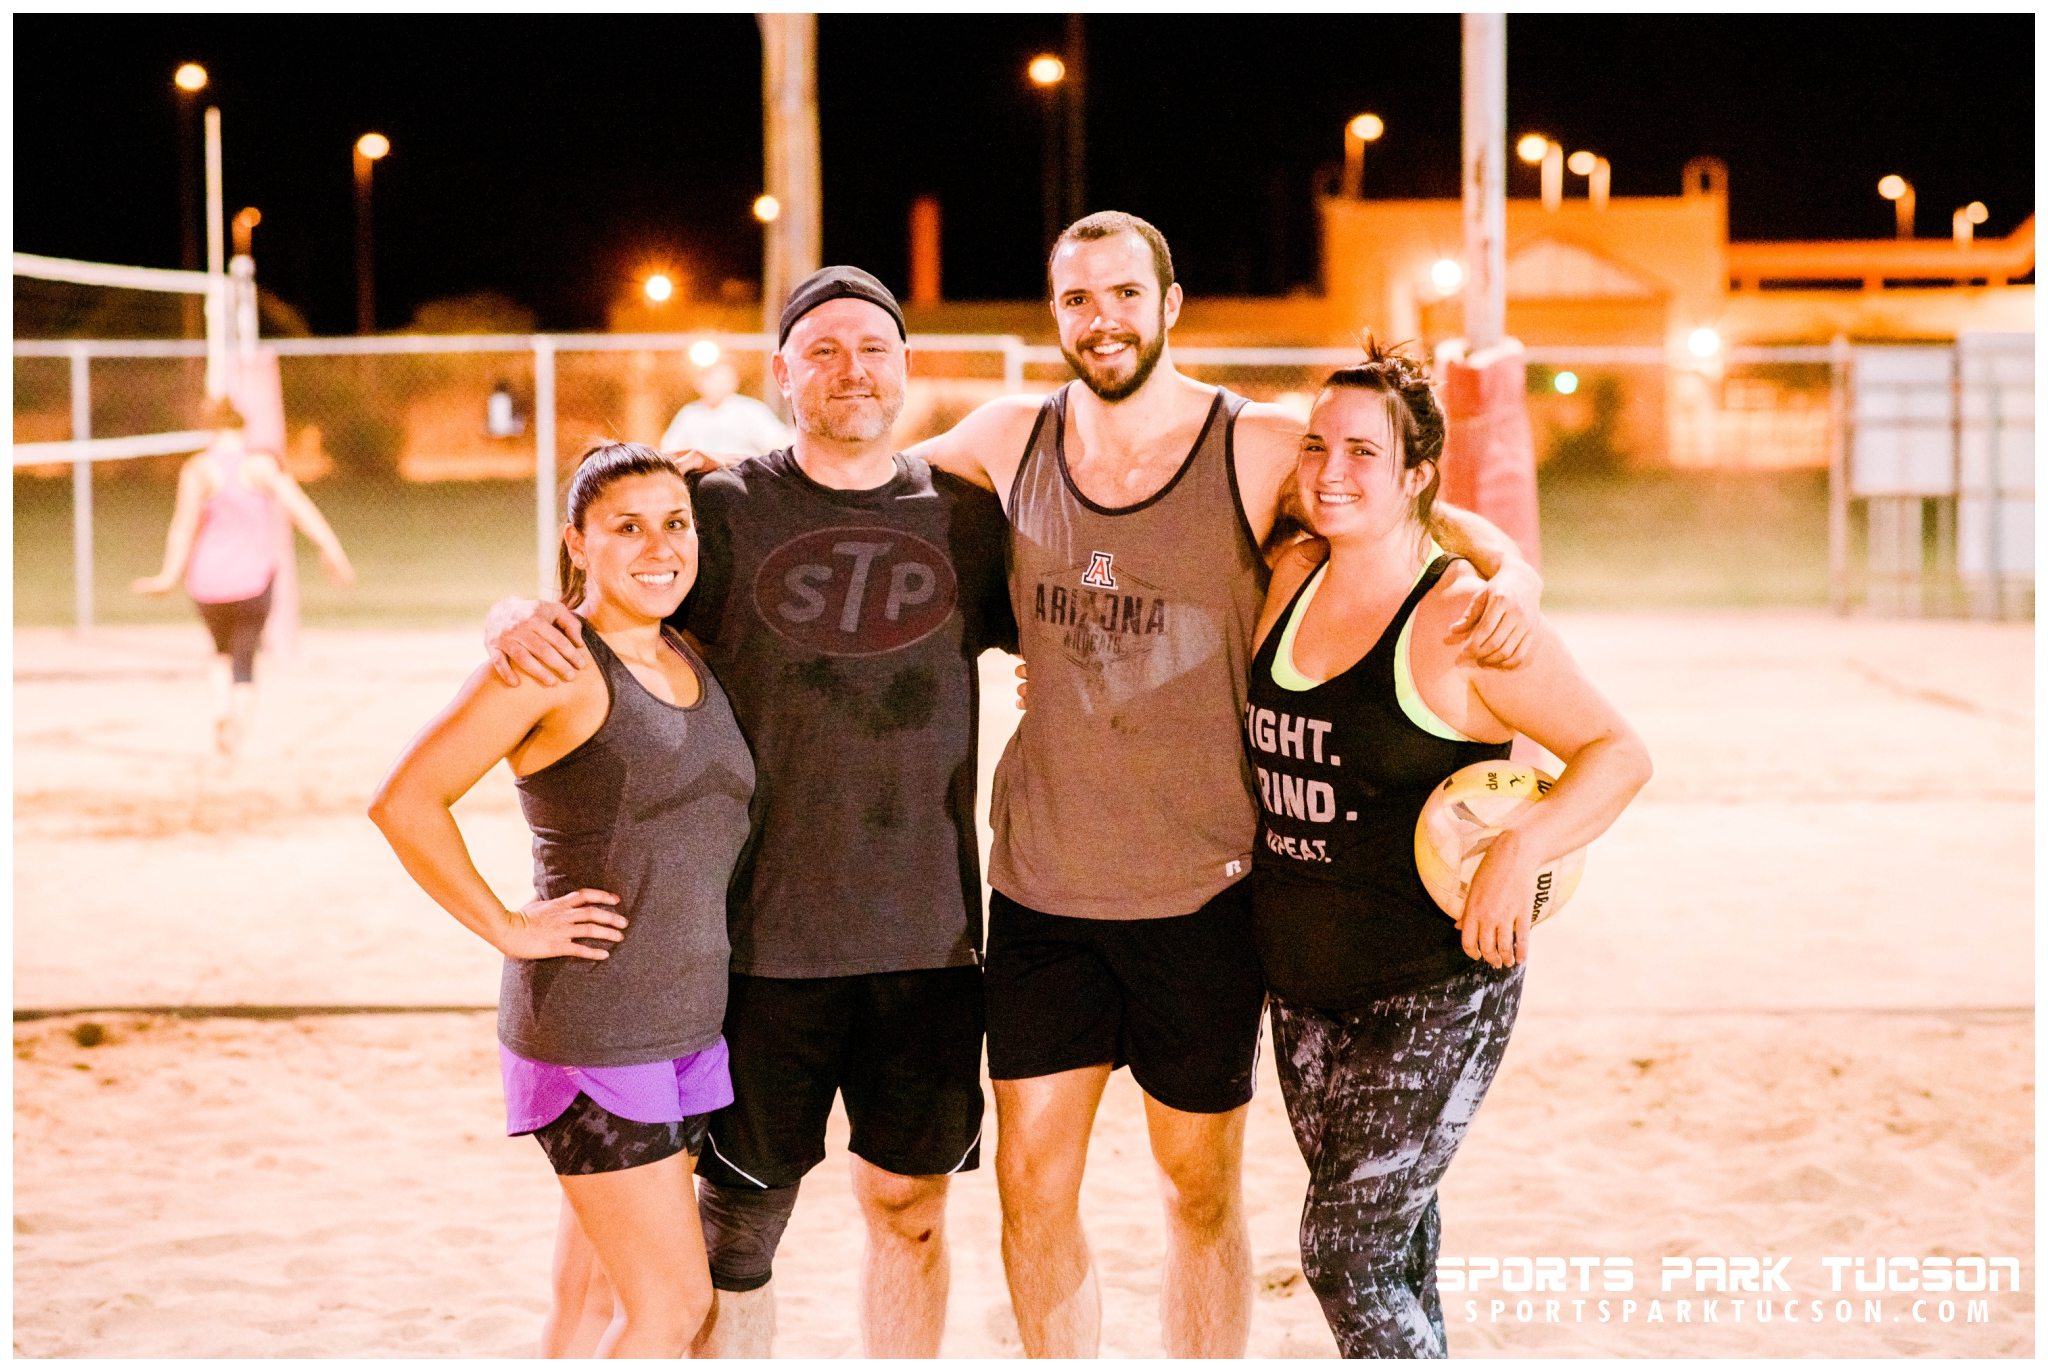 Volleyball Wed Co-ed 4 v 4 - Gold, Team: The Volley Llamas